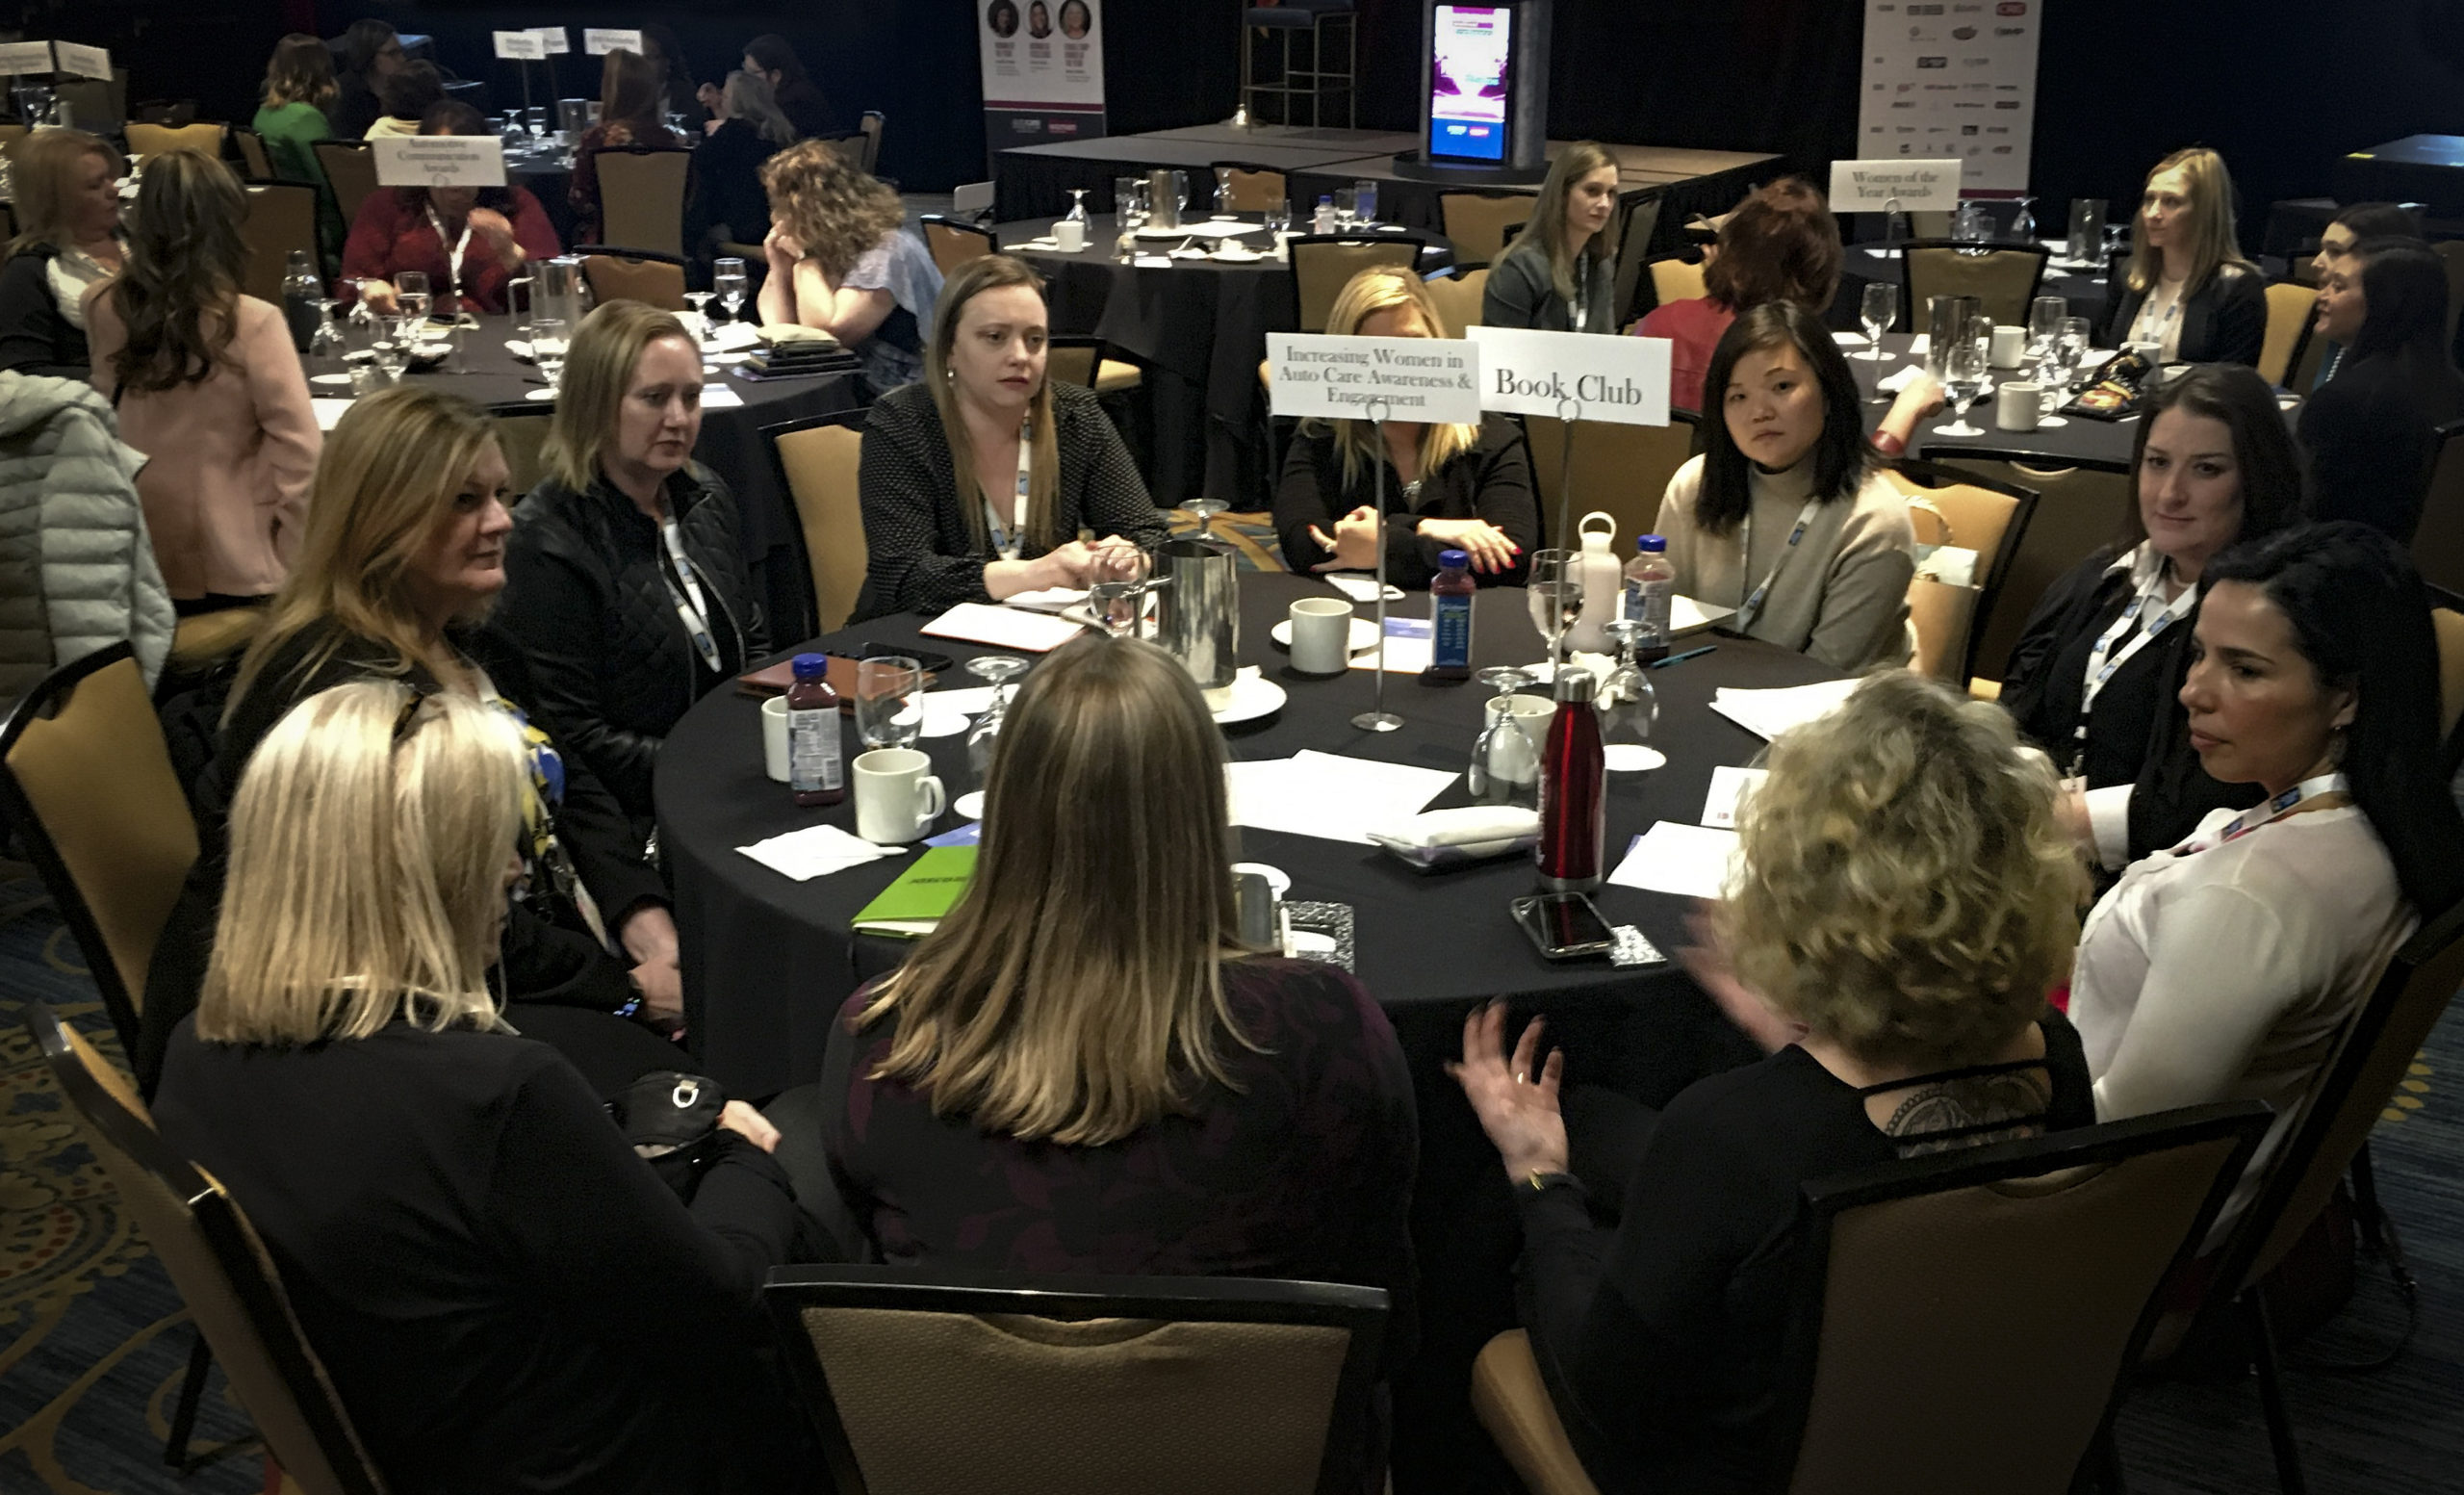 Women in Auto Care conference roundtable discussions